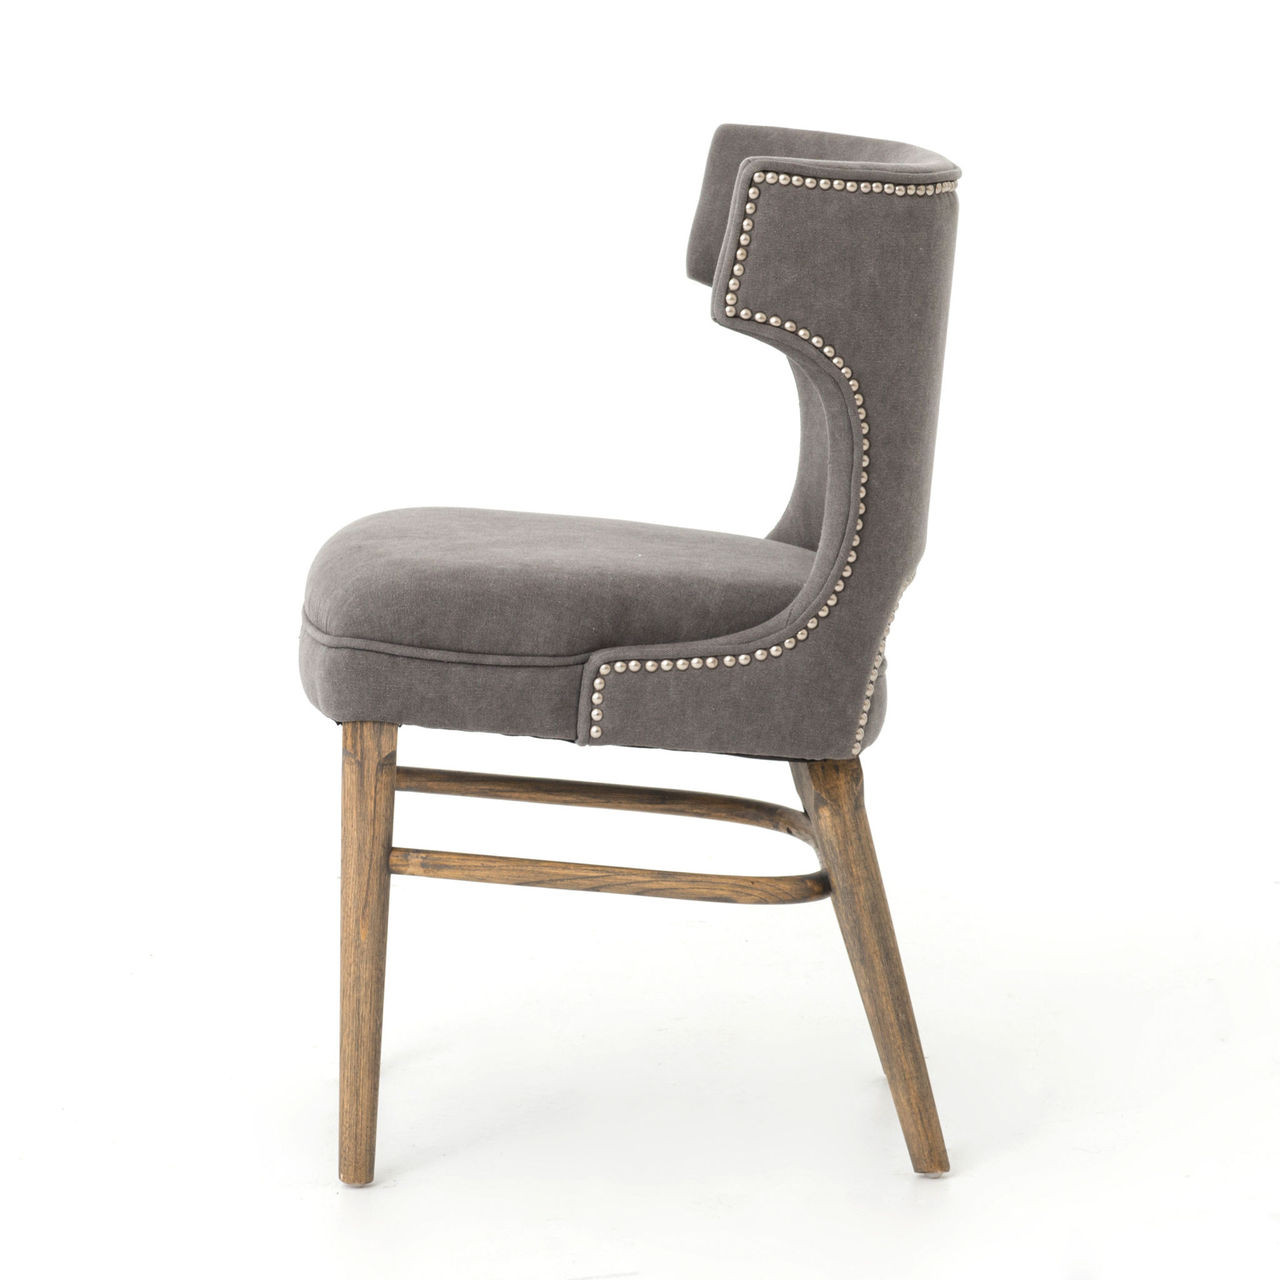 gray dining chair childrens wooden table and set task dark nailhead wing zin home